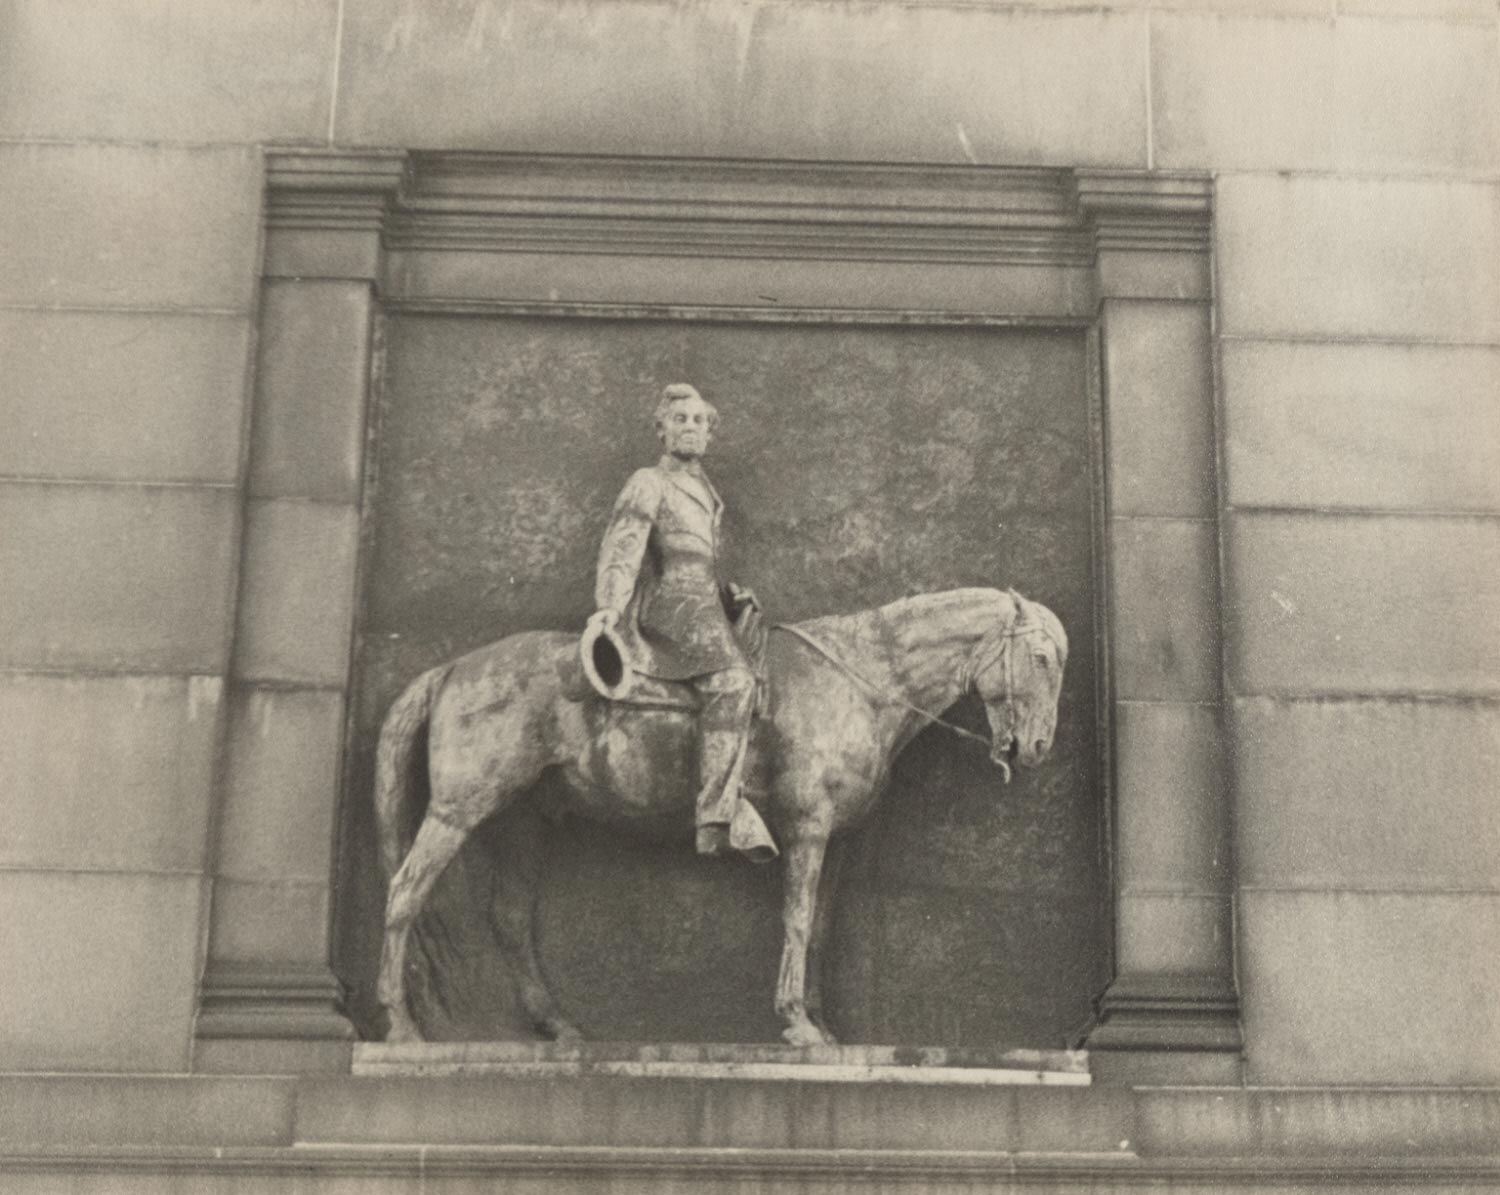 Abraham Lincoln Relief on the Soliders' and Sailors' Arch at the Grand Army Plaza, Brooklyn